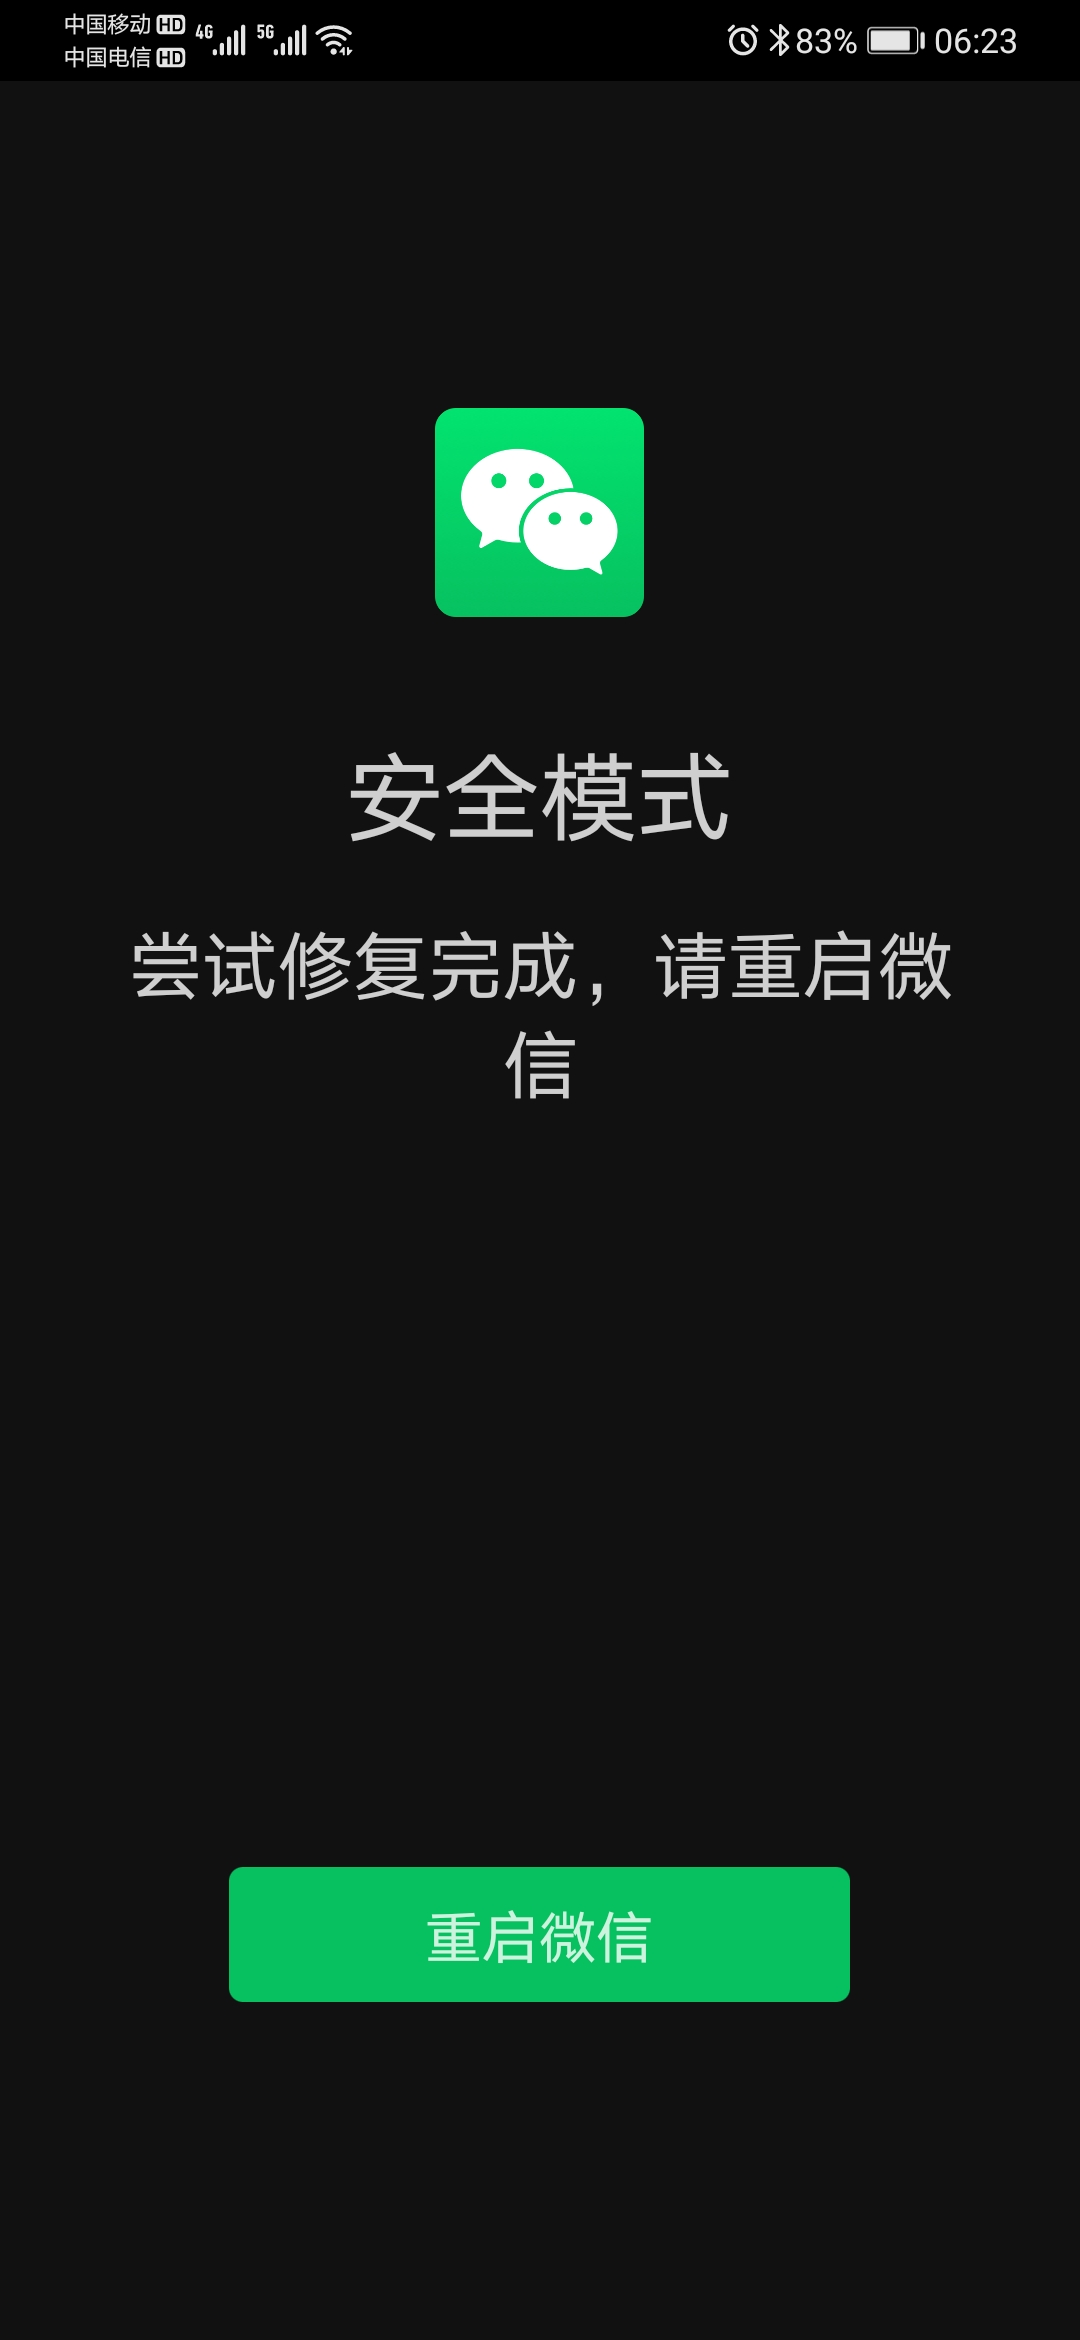 Screenshot_20201011_062344_com.tencent.mm.jpg